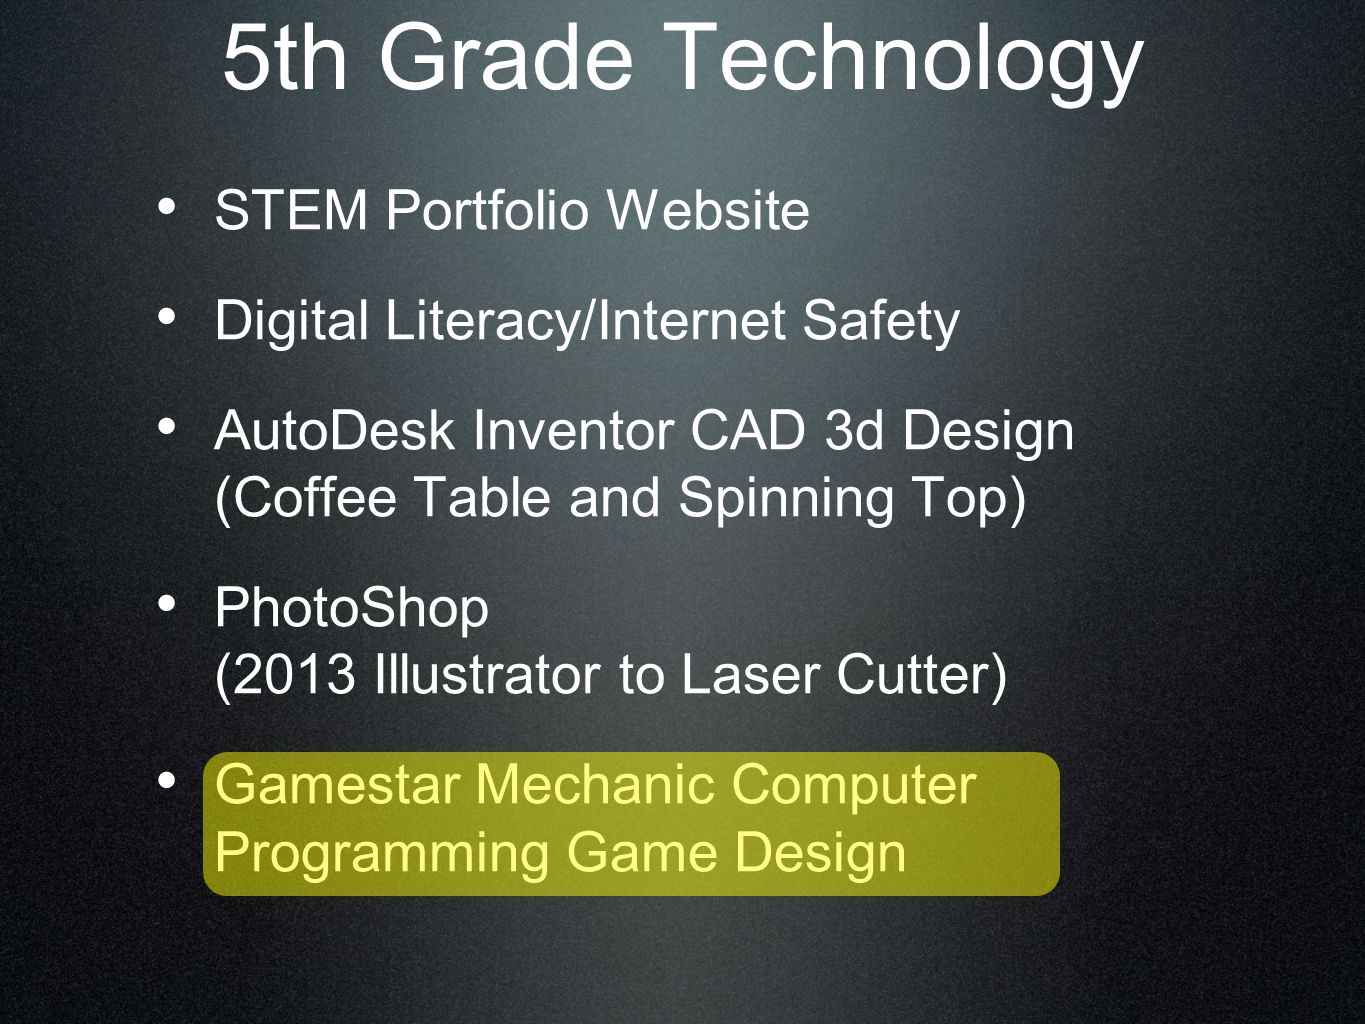 5th Grade Technology STEM Portfolio Website Digital Literacy/Internet Safety AutoDesk Inventor CAD 3d Design (Coffee Table and Spinning Top) PhotoShop (2013 Illustrator to Laser Cutter) Gamestar Mechanic Computer Programming Game Design